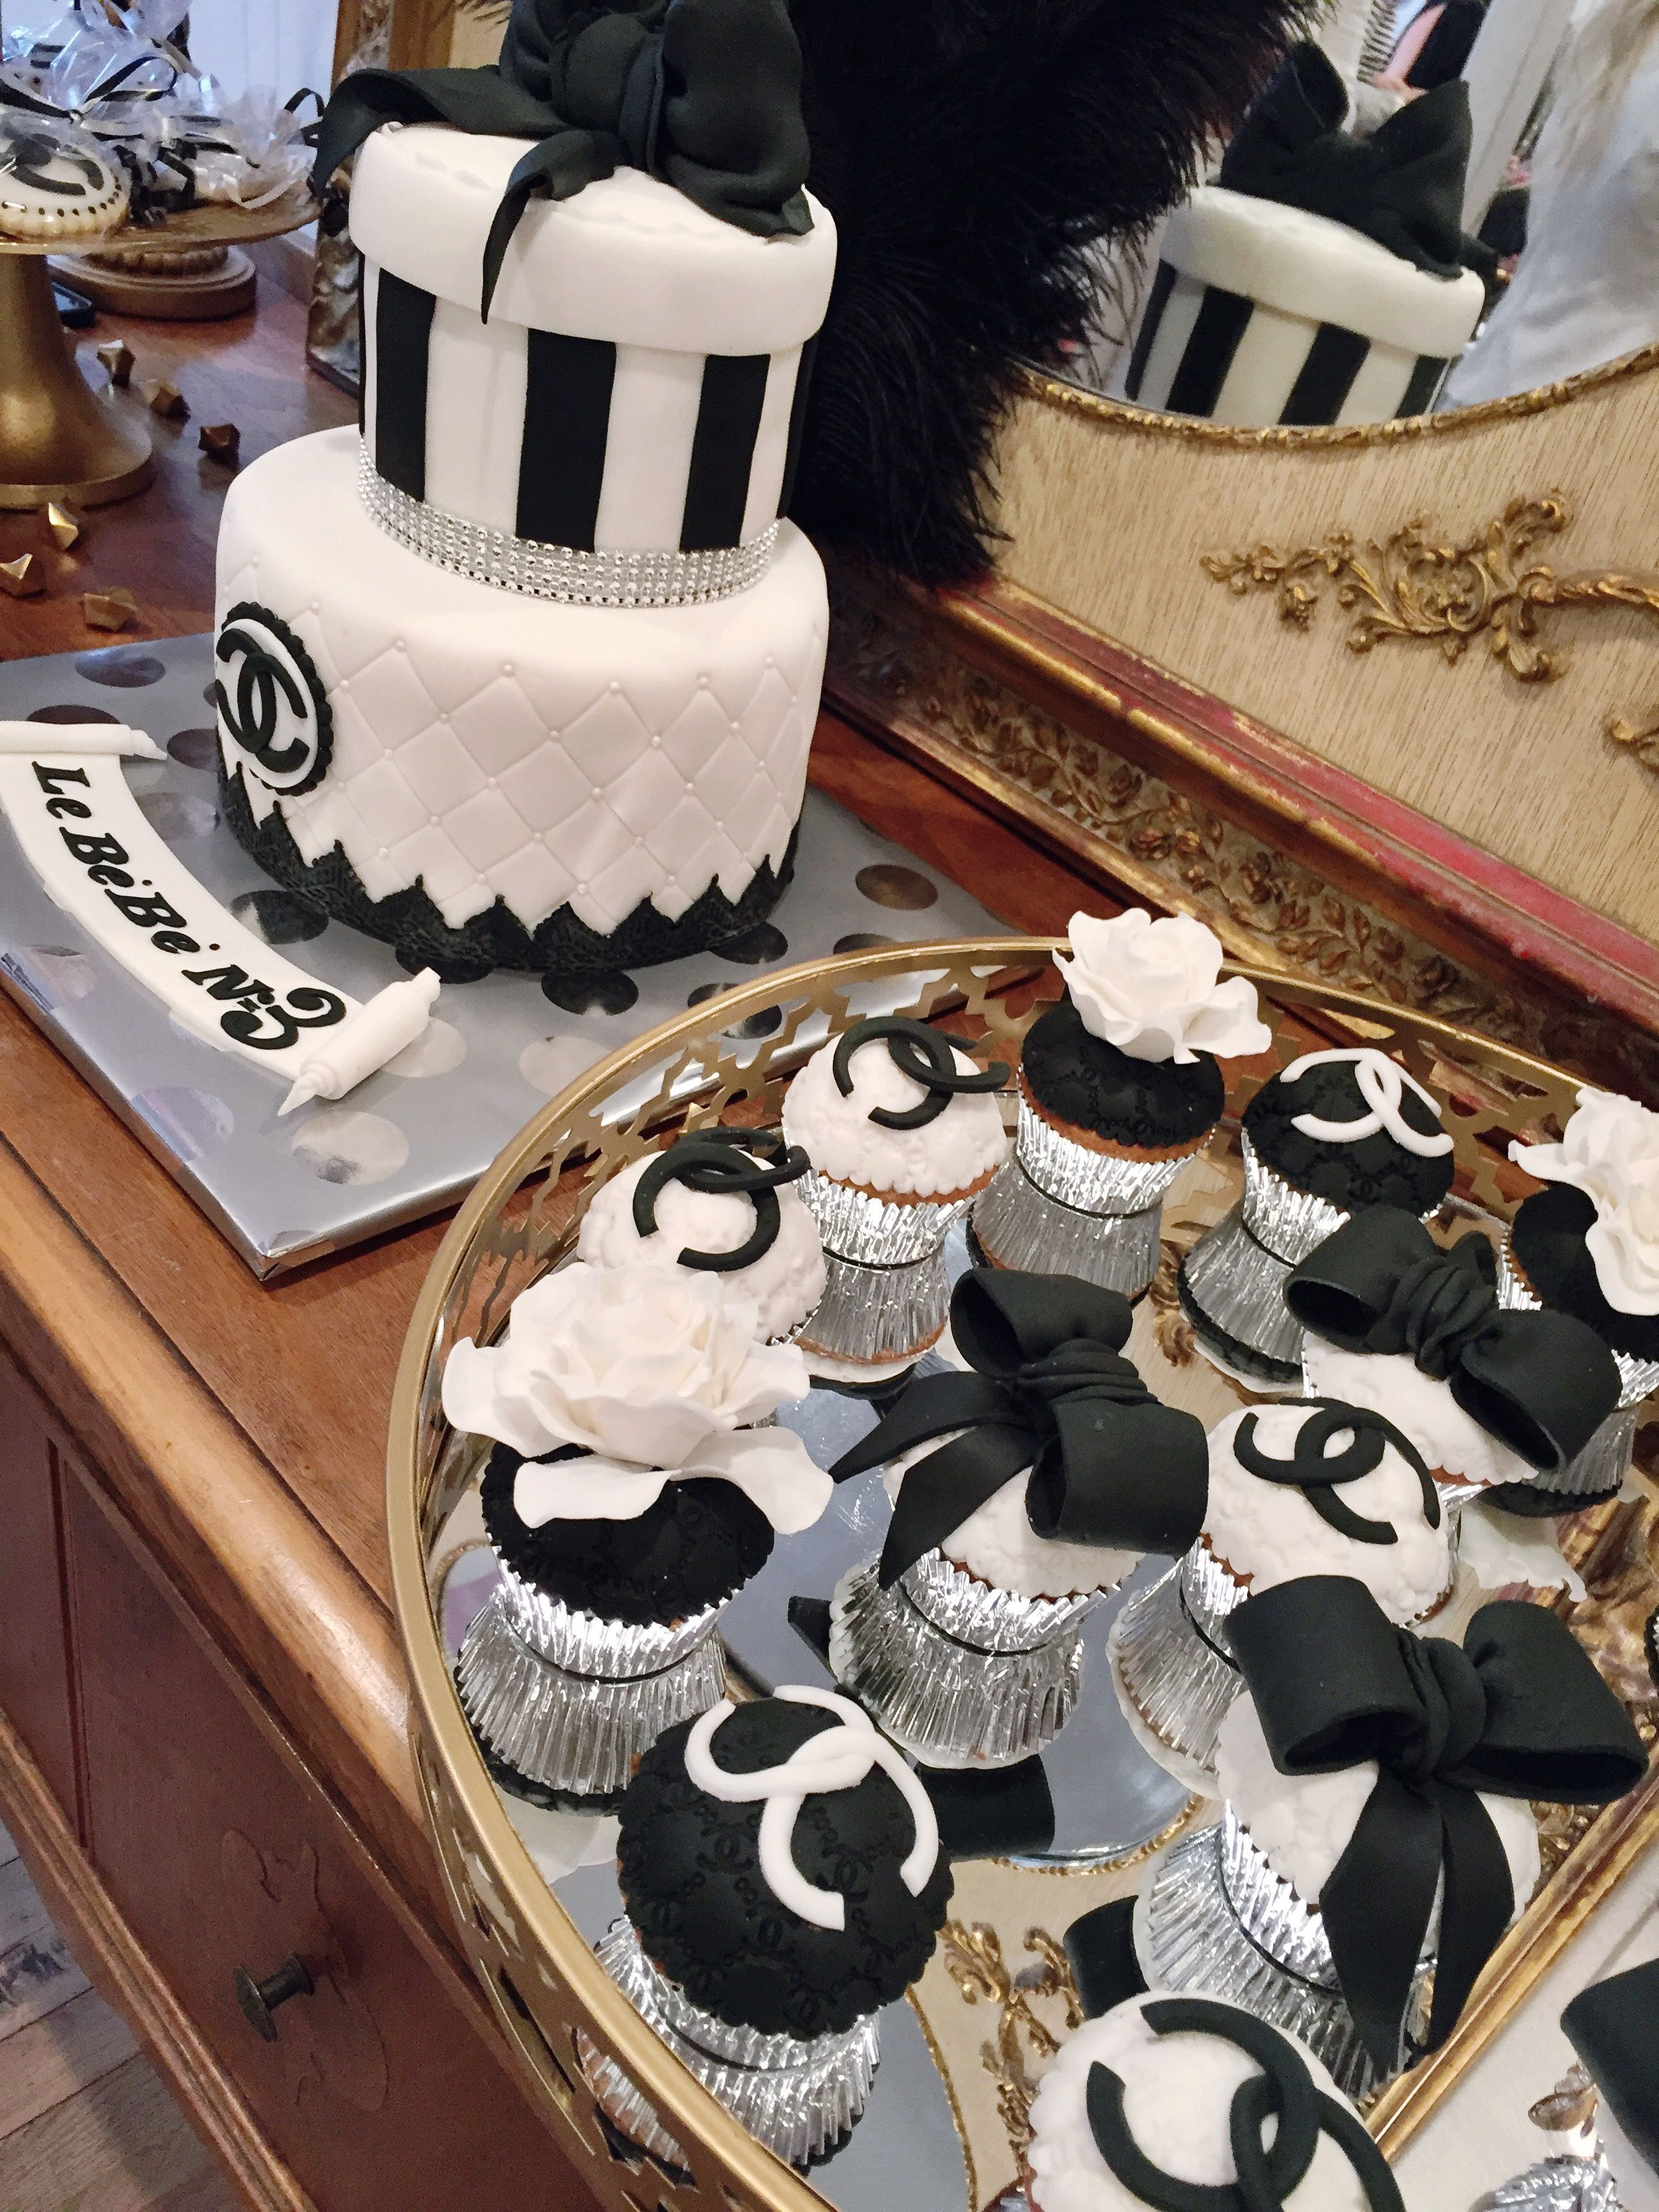 chanel, chanel cupcakes, bachelorette cake, bridal shower cake, chanel party theme, chanel theme, black and white cupcakes, cupcakes, dessert table